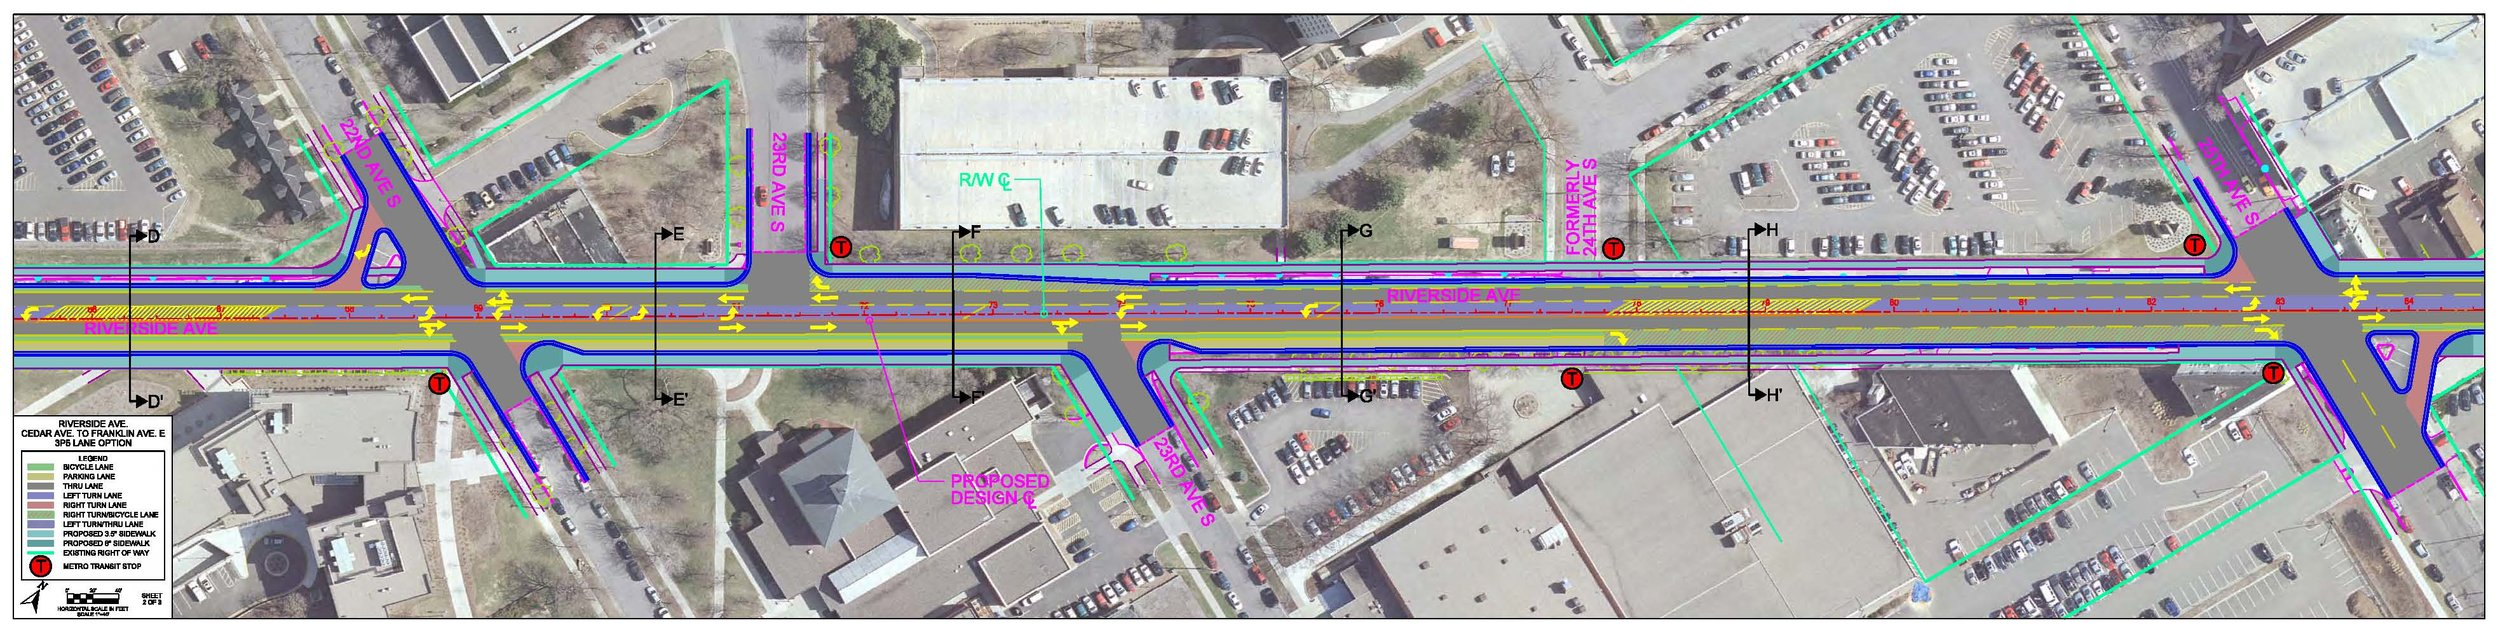 Design for Riverside Avenue streetscape